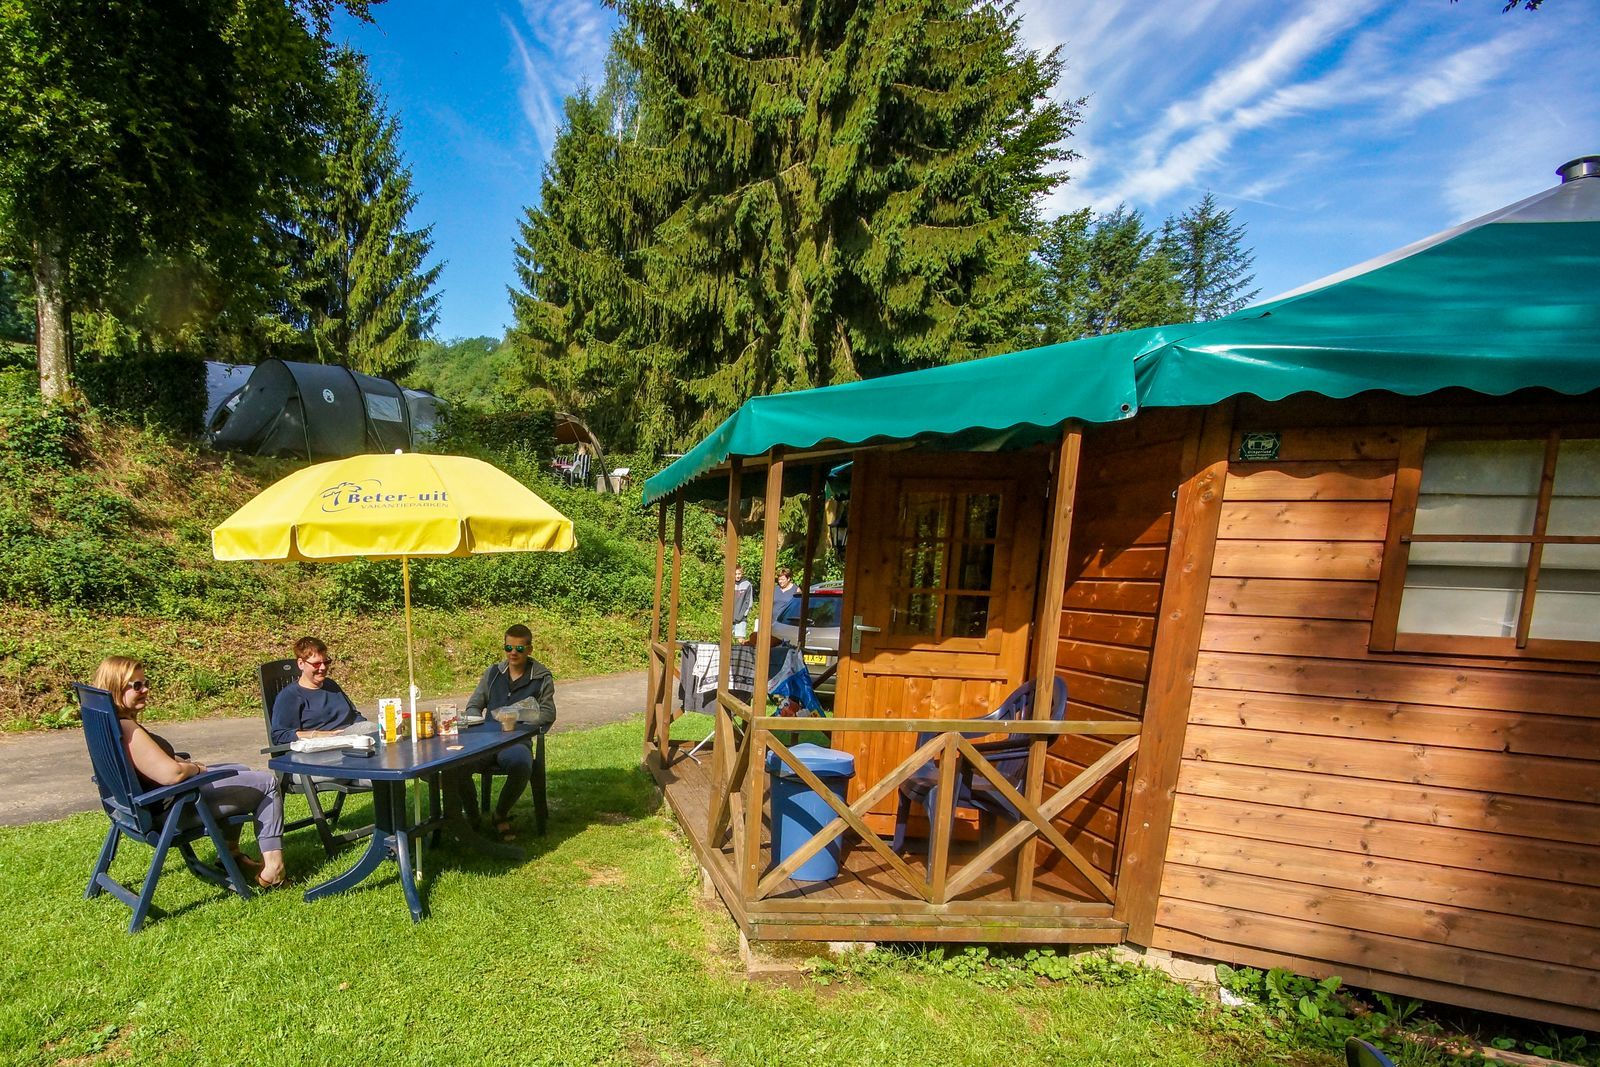 Camping chalet Tandel